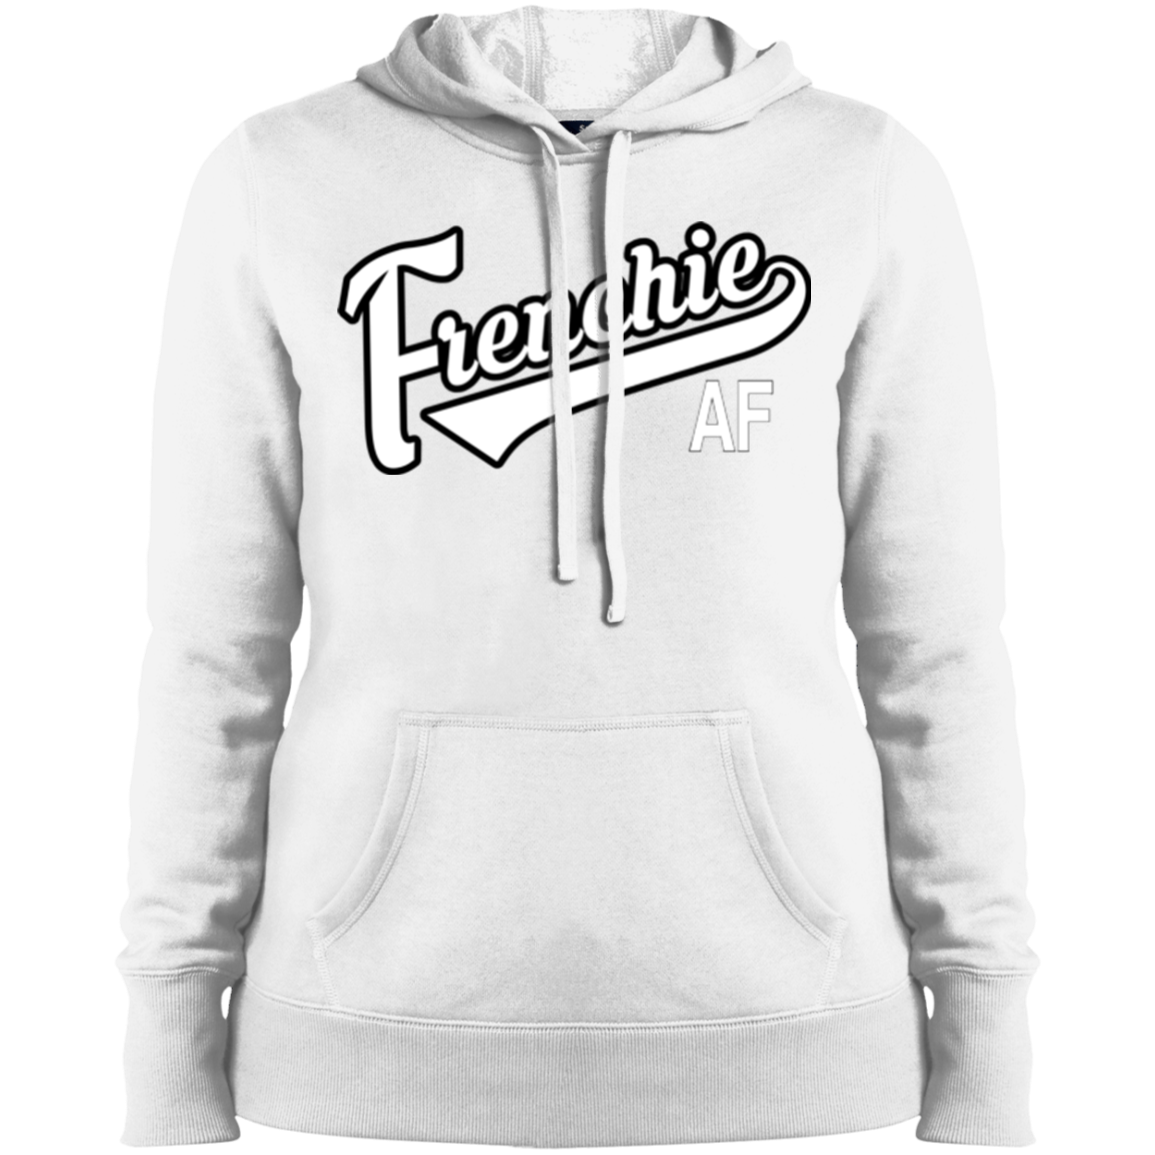 Frenchie AF Womens Pullover Hoodie - Women's Sweatshirts I Love Frenchie Bulldogs